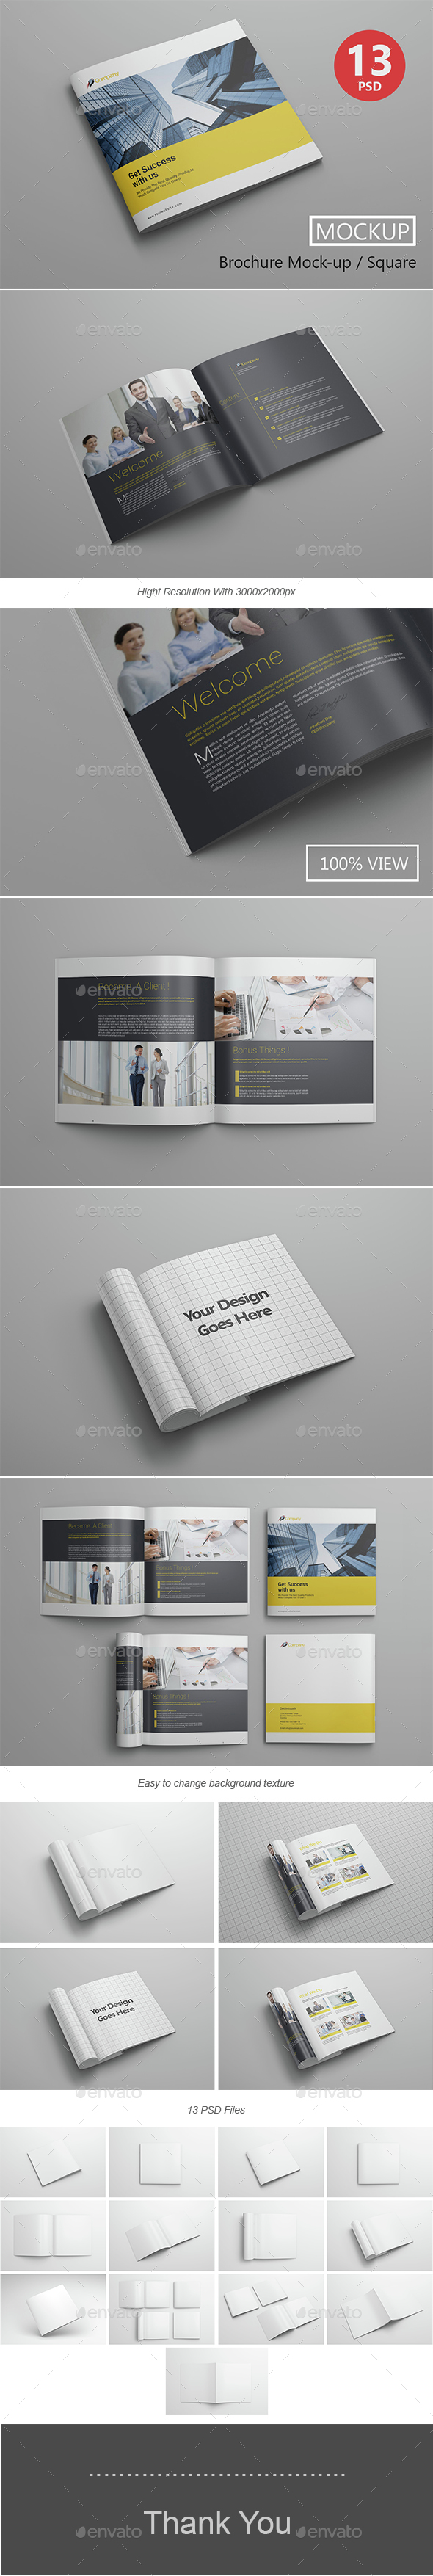 Brochure Mockup / Square - Product Mock-Ups Graphics